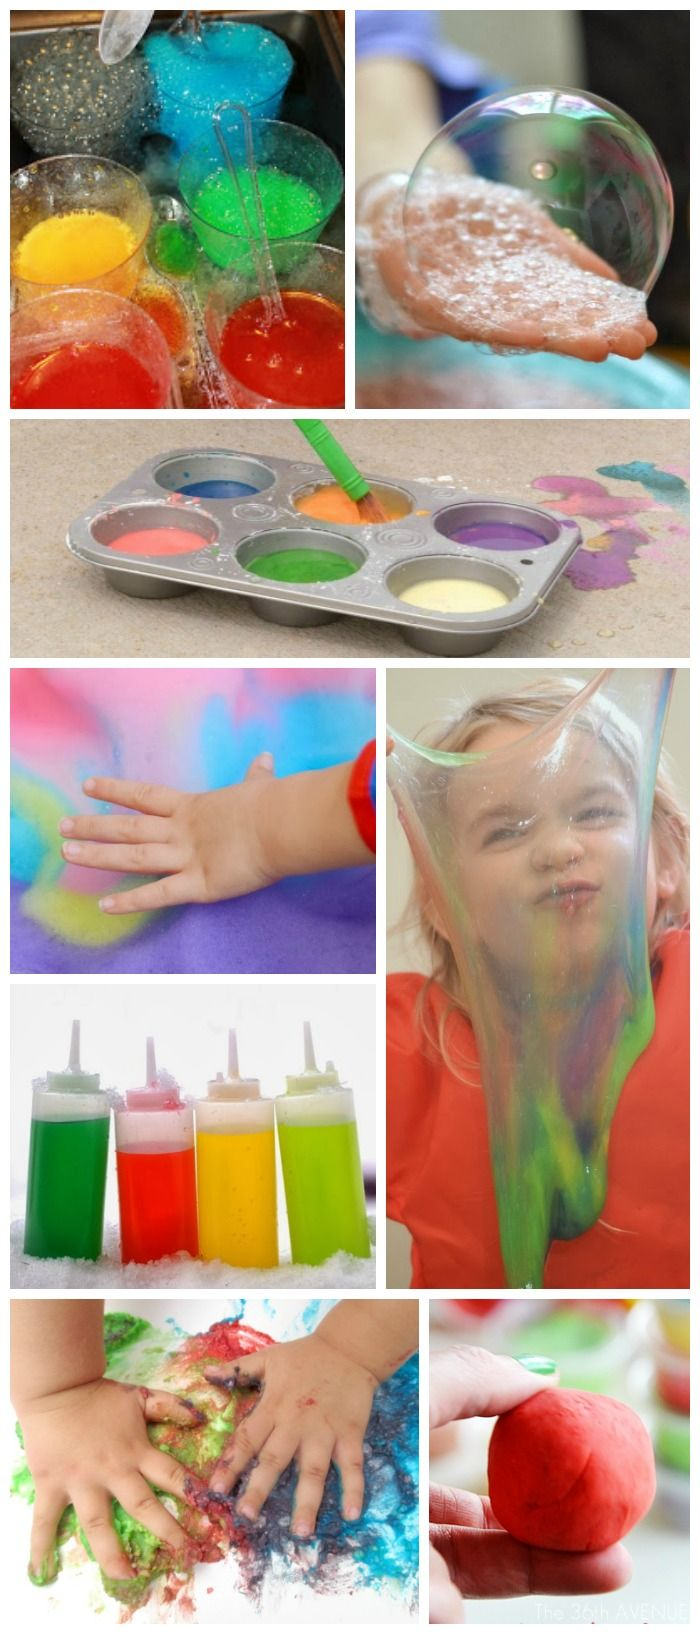 how to make edible slime with kool aid